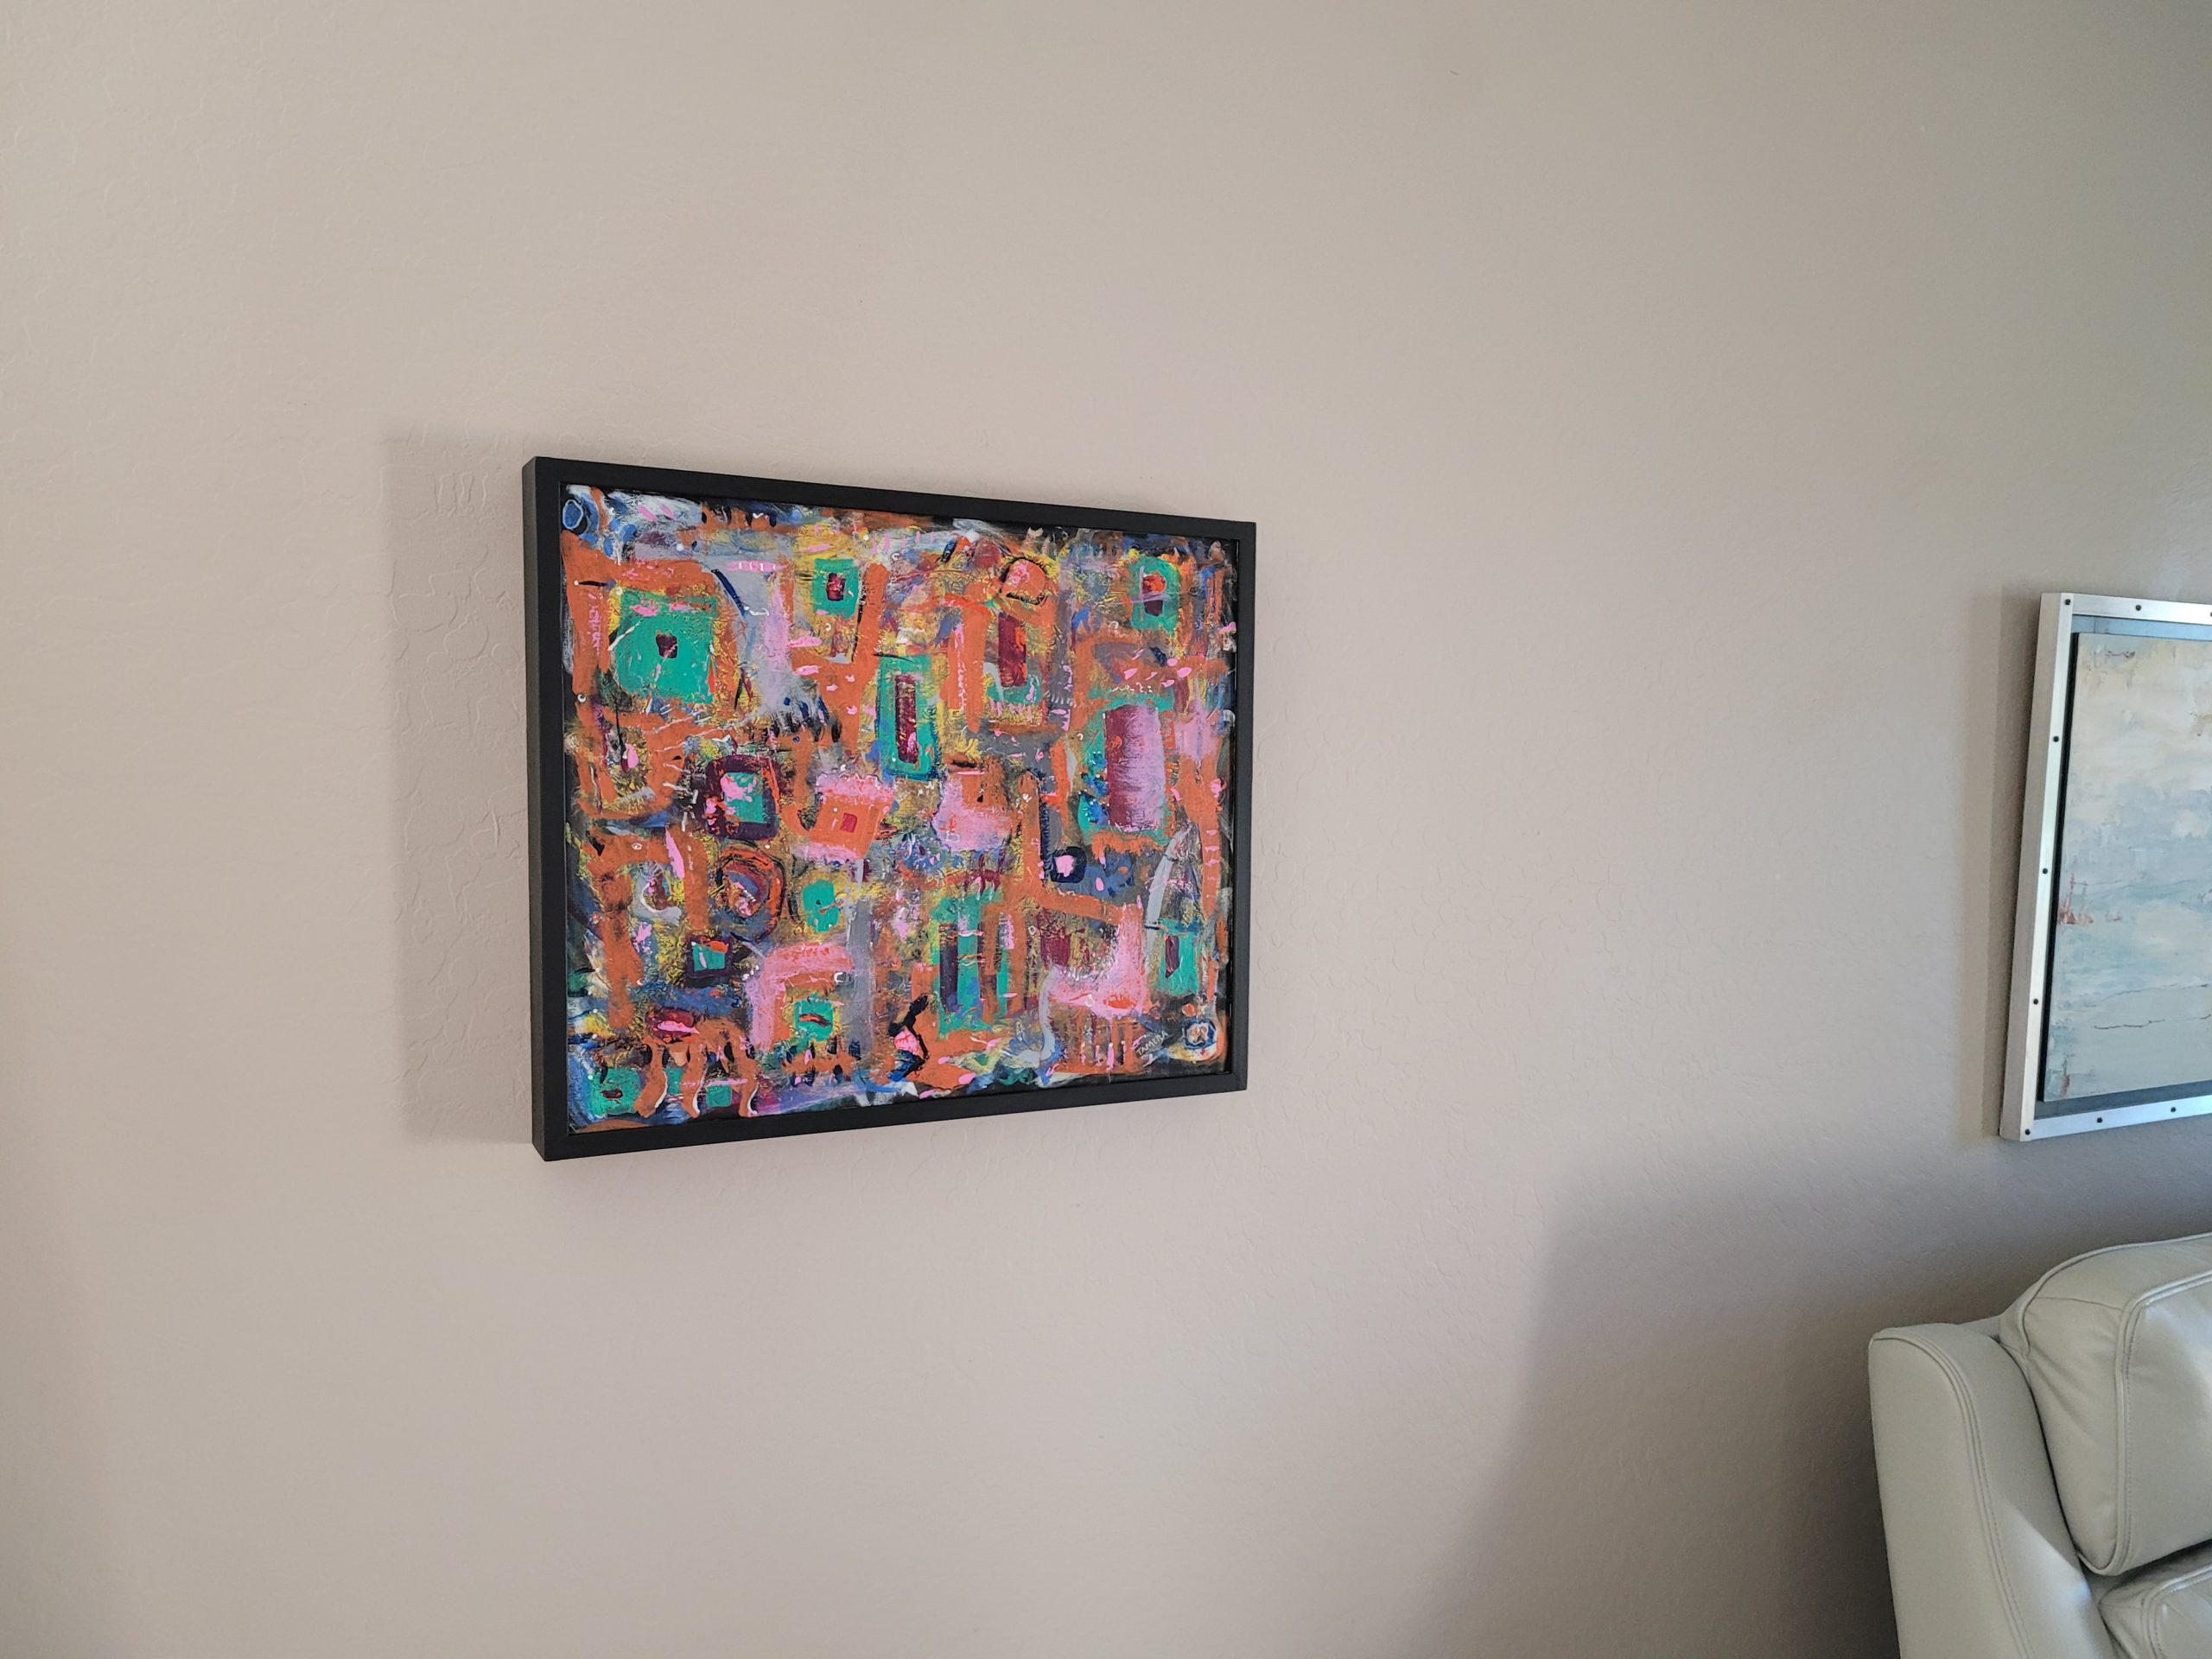 New Painting and Frame